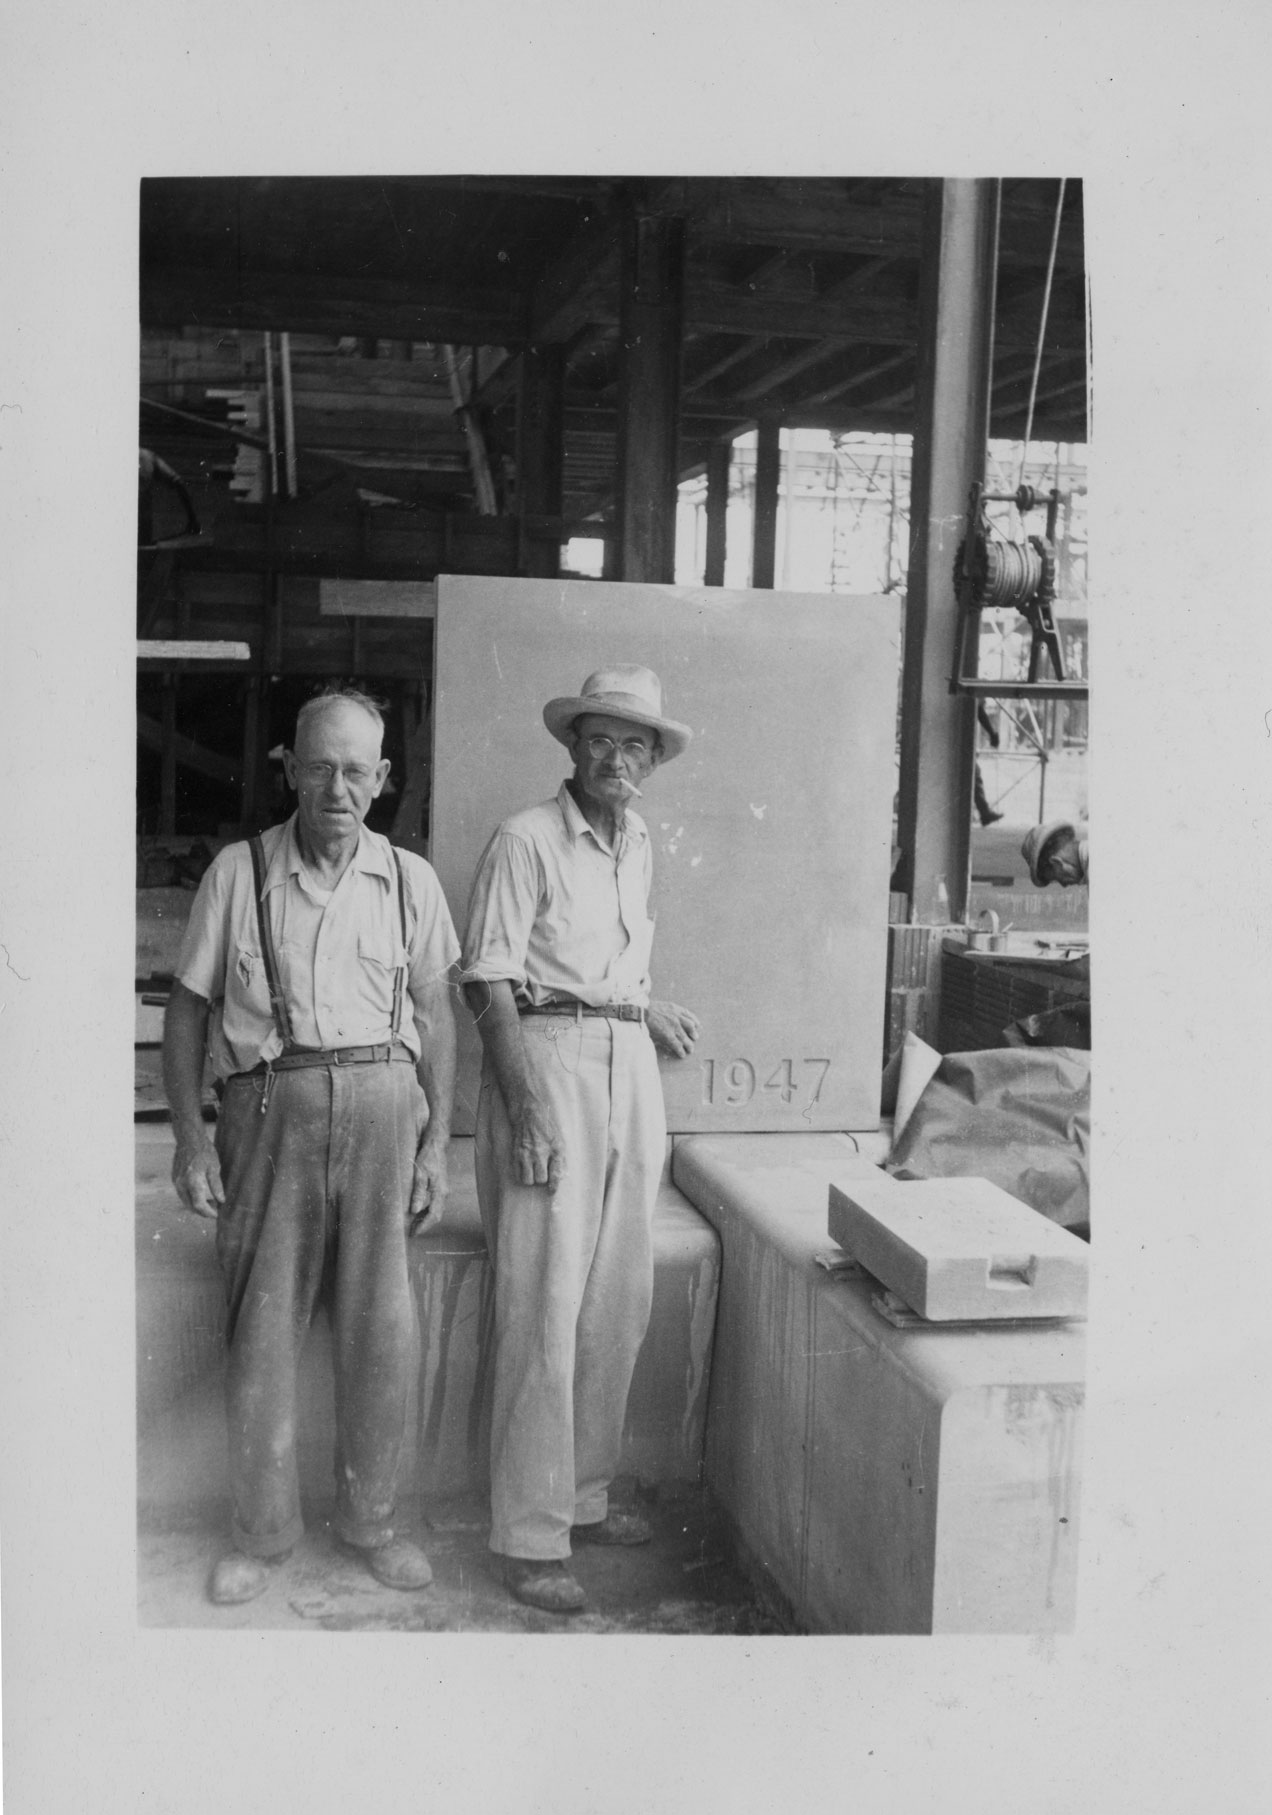 Two workmen by the 1947 Cornerstone for the Naval Hospital